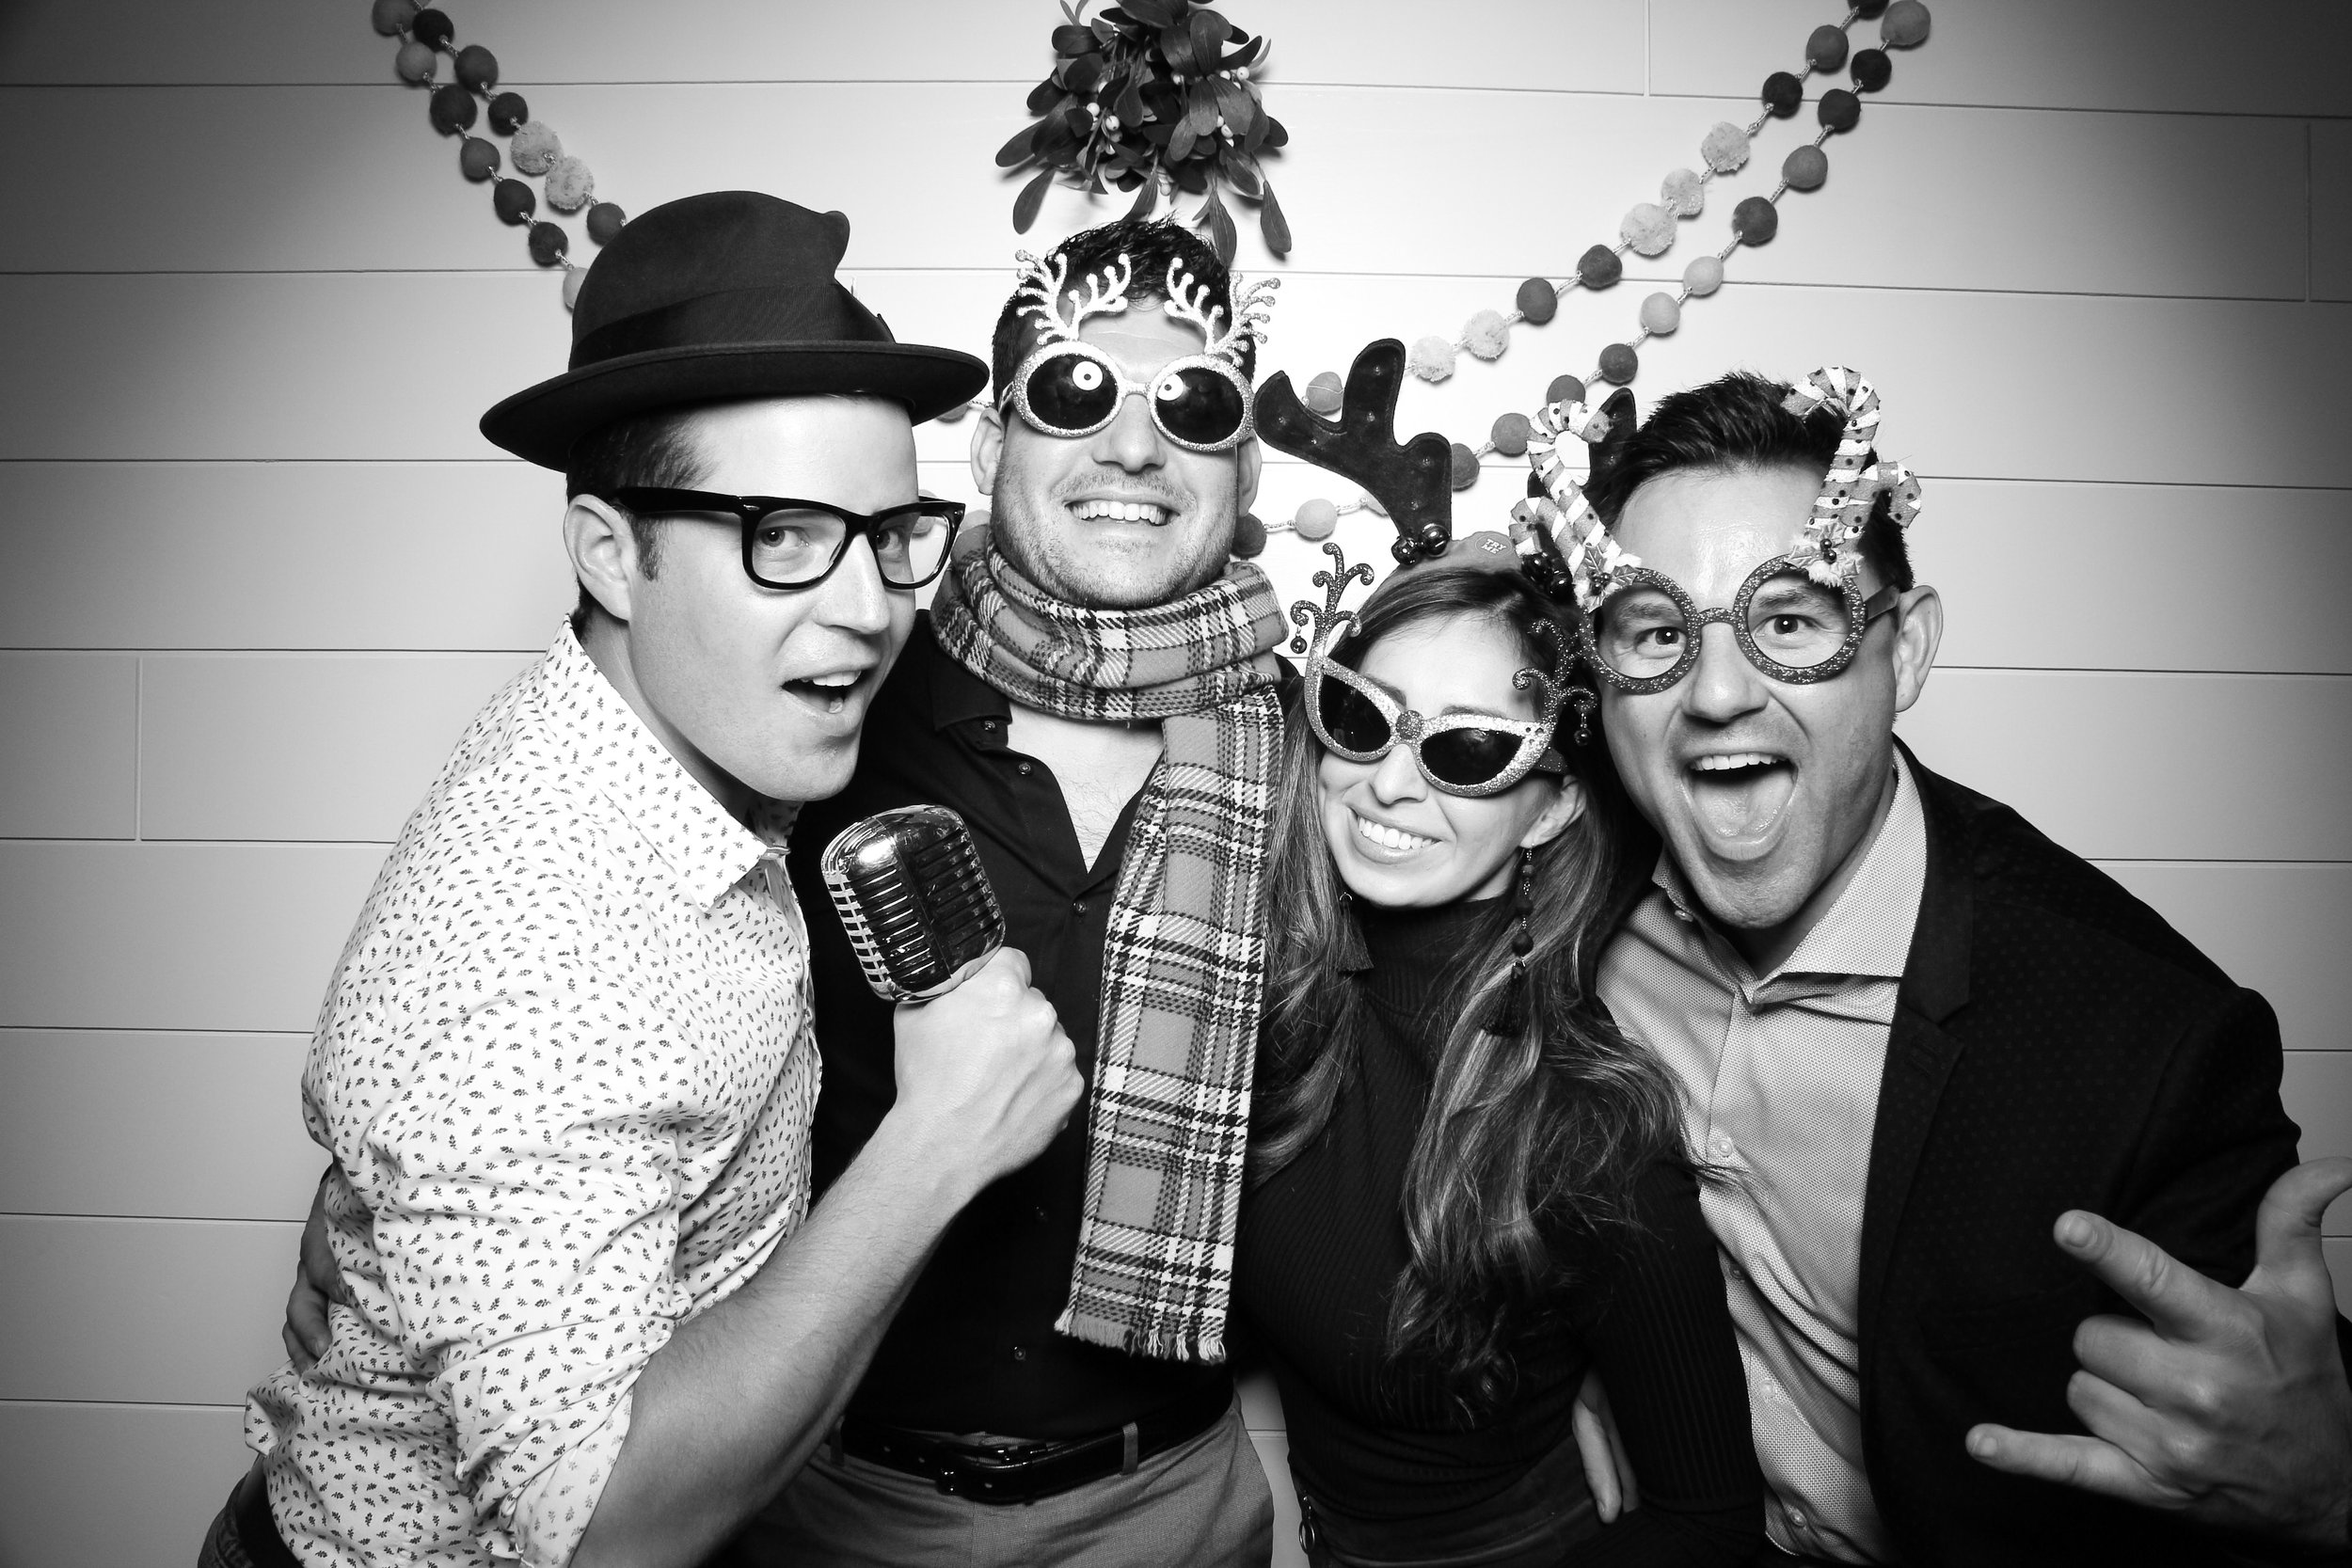 Chicago_Vintage_Photobooth_Christmas_Holiday_Party_13.jpg